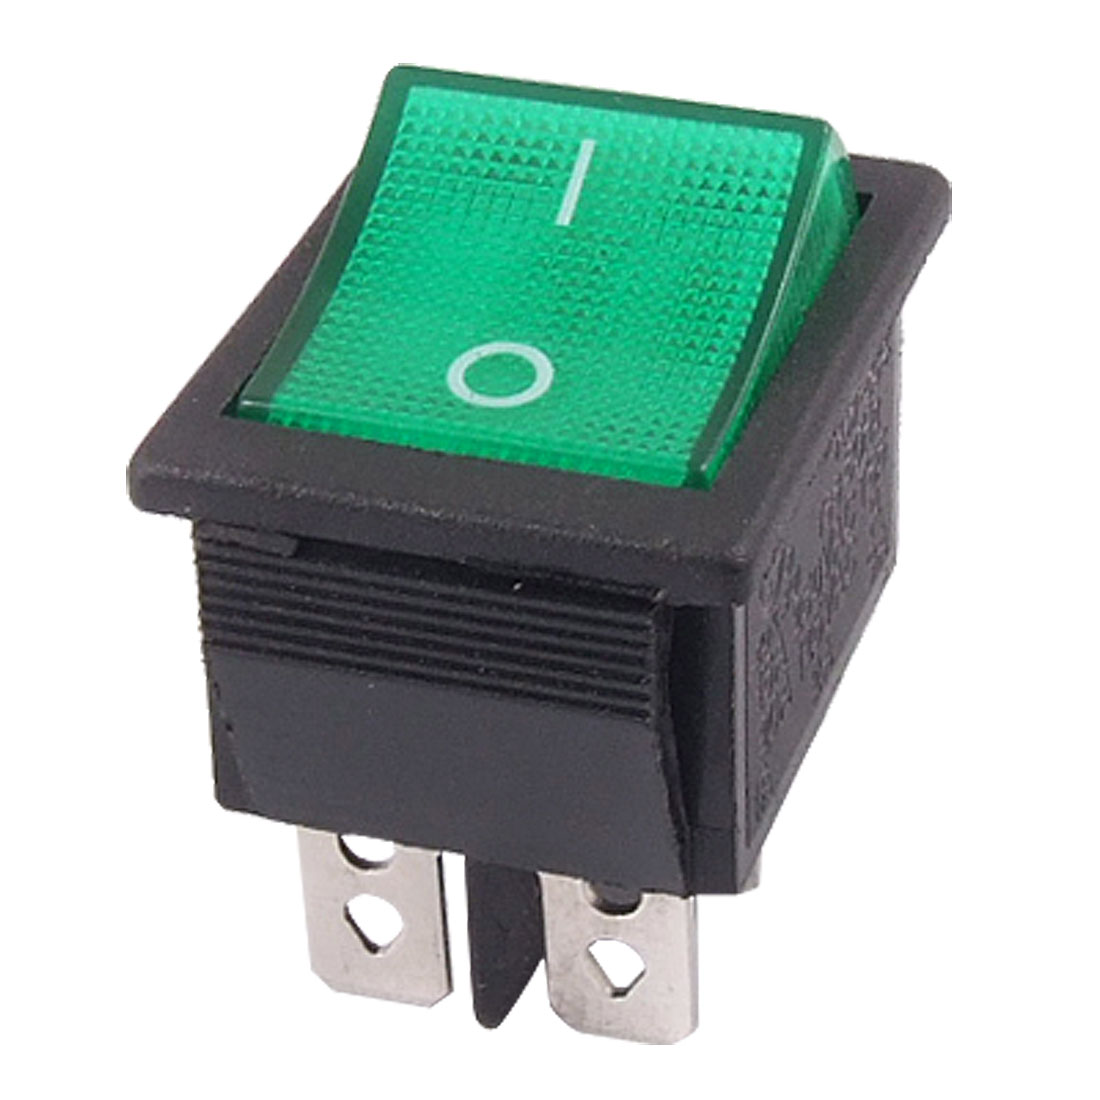 Green Light 4 Pin DPST ON-OFF Snap in Boat Rocker Switch 16A/250V 20A/125V AC